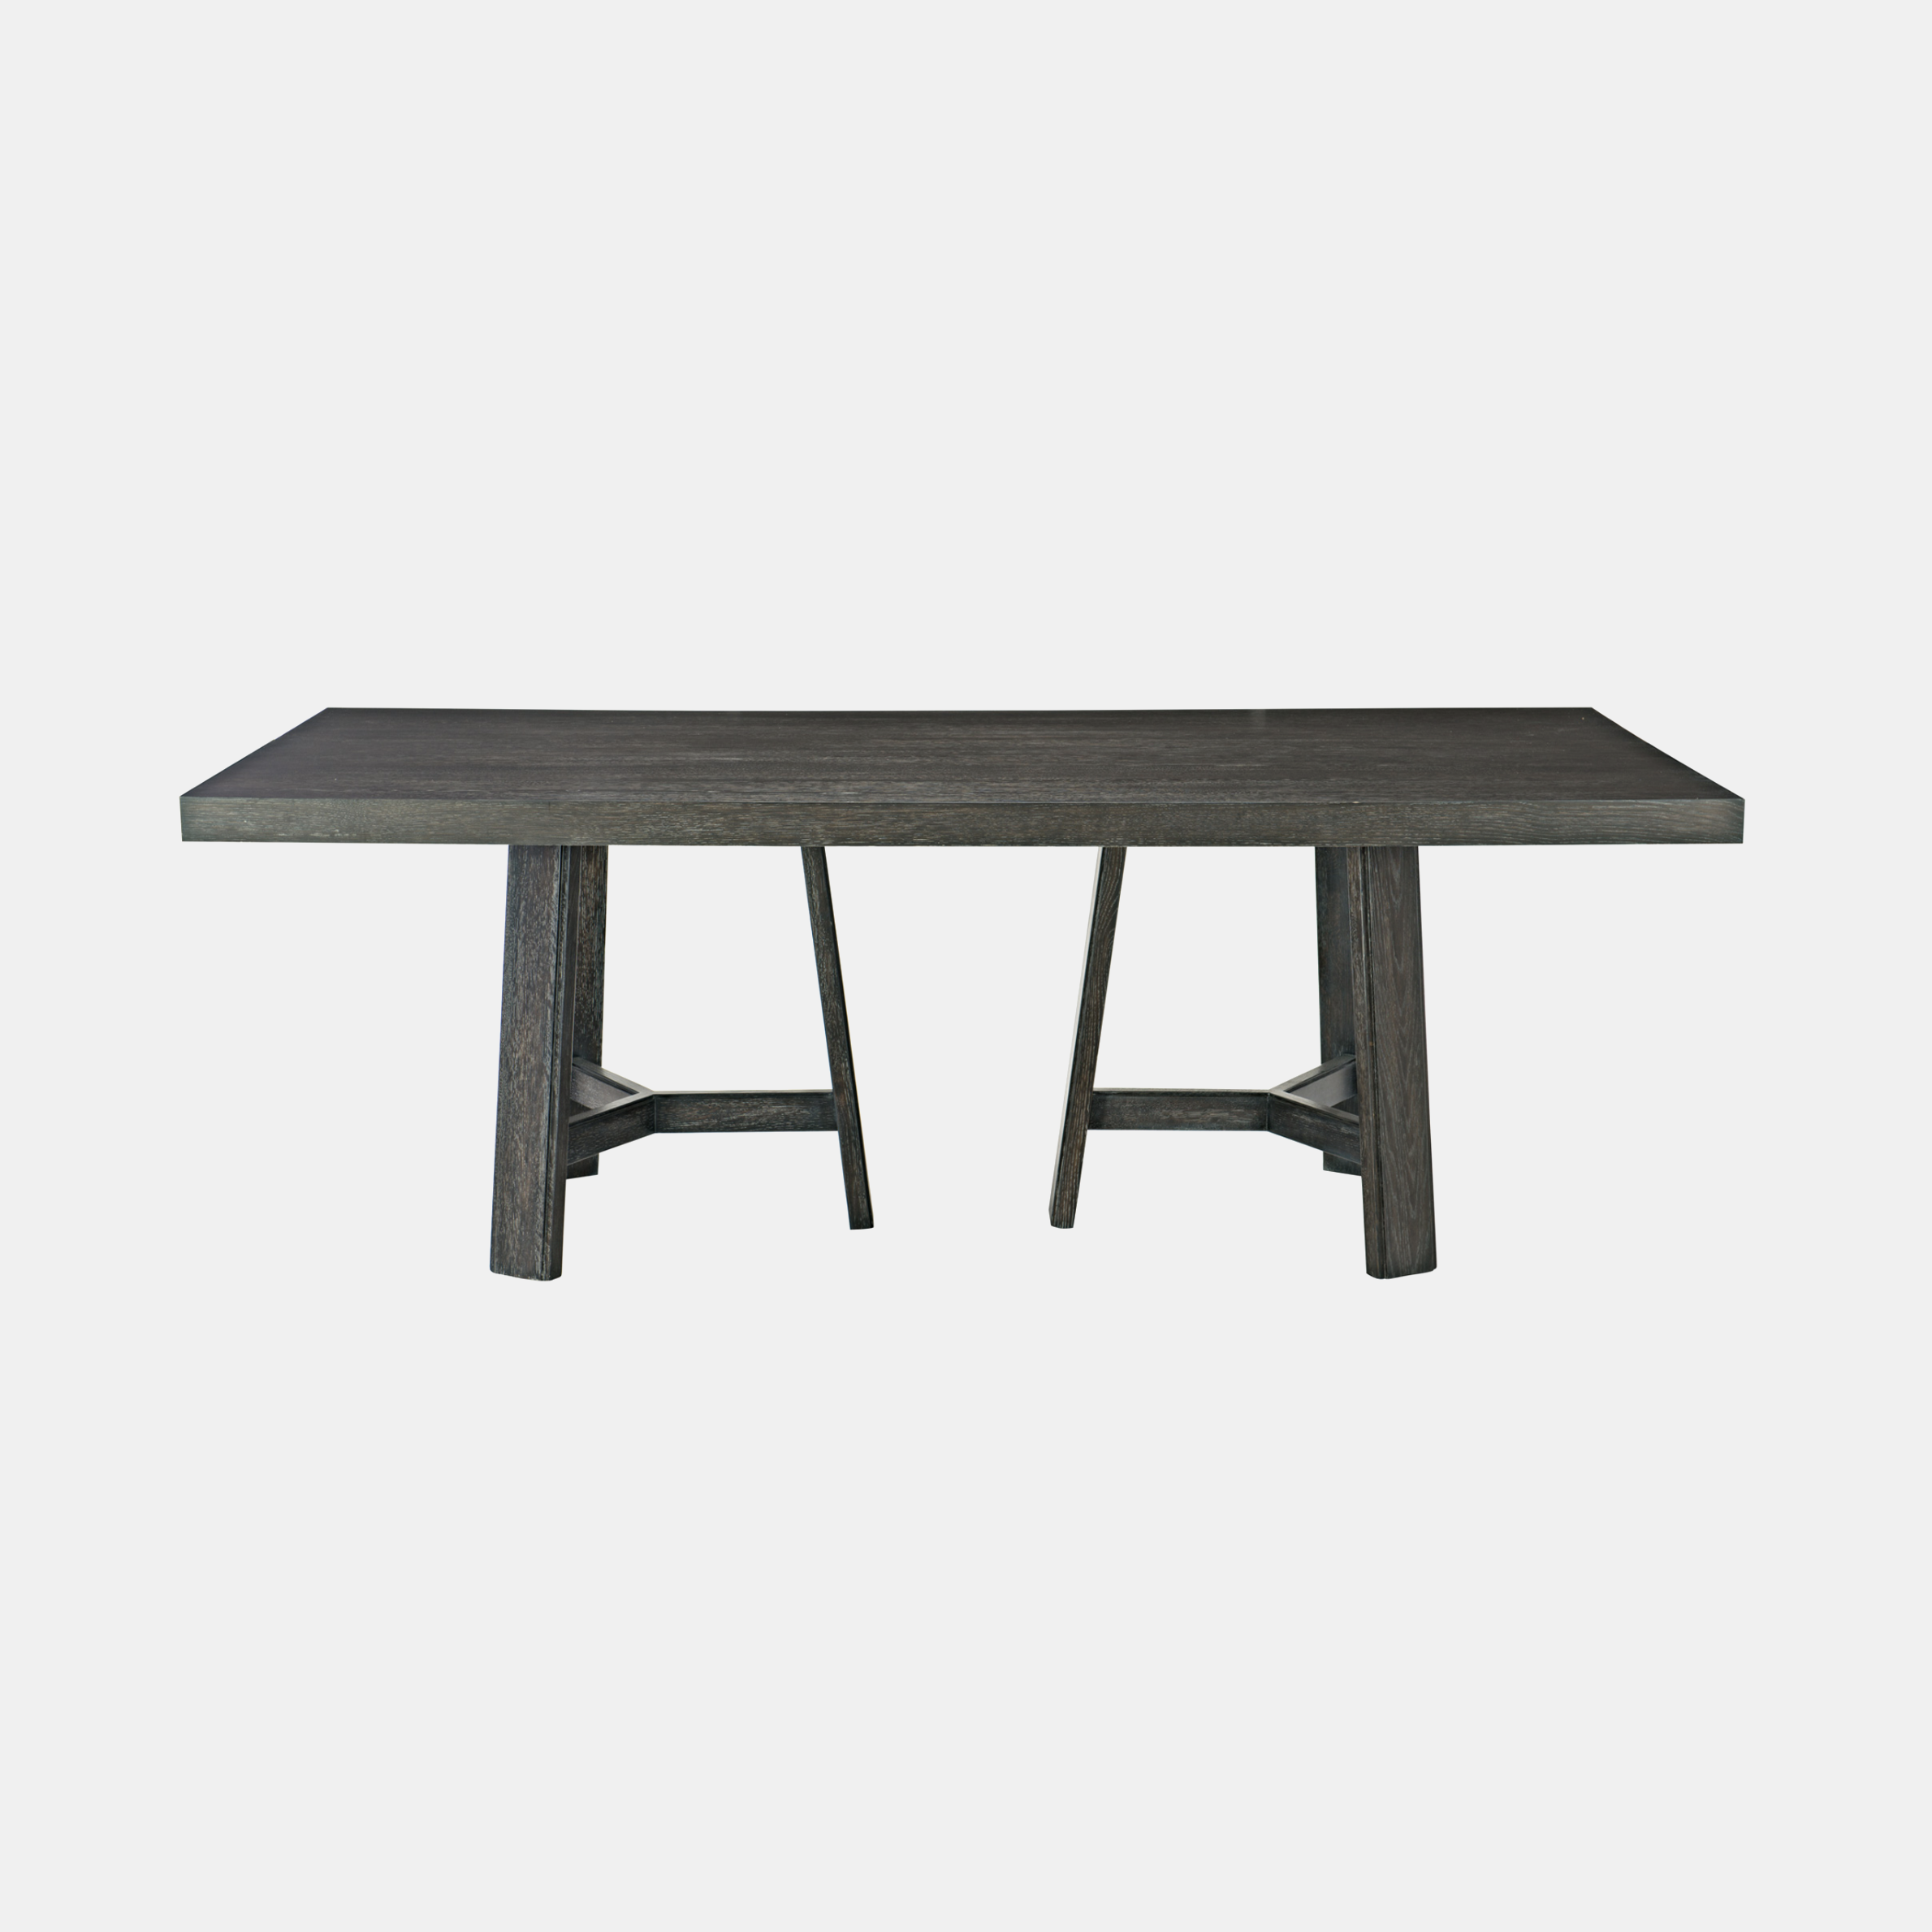 """Colworth Rectangular Dining Table  86""""l or 106""""l x 44""""w x 29.75""""h Also available in 54"""" or 60"""" round x 29.75"""" h SKU9674BHT"""